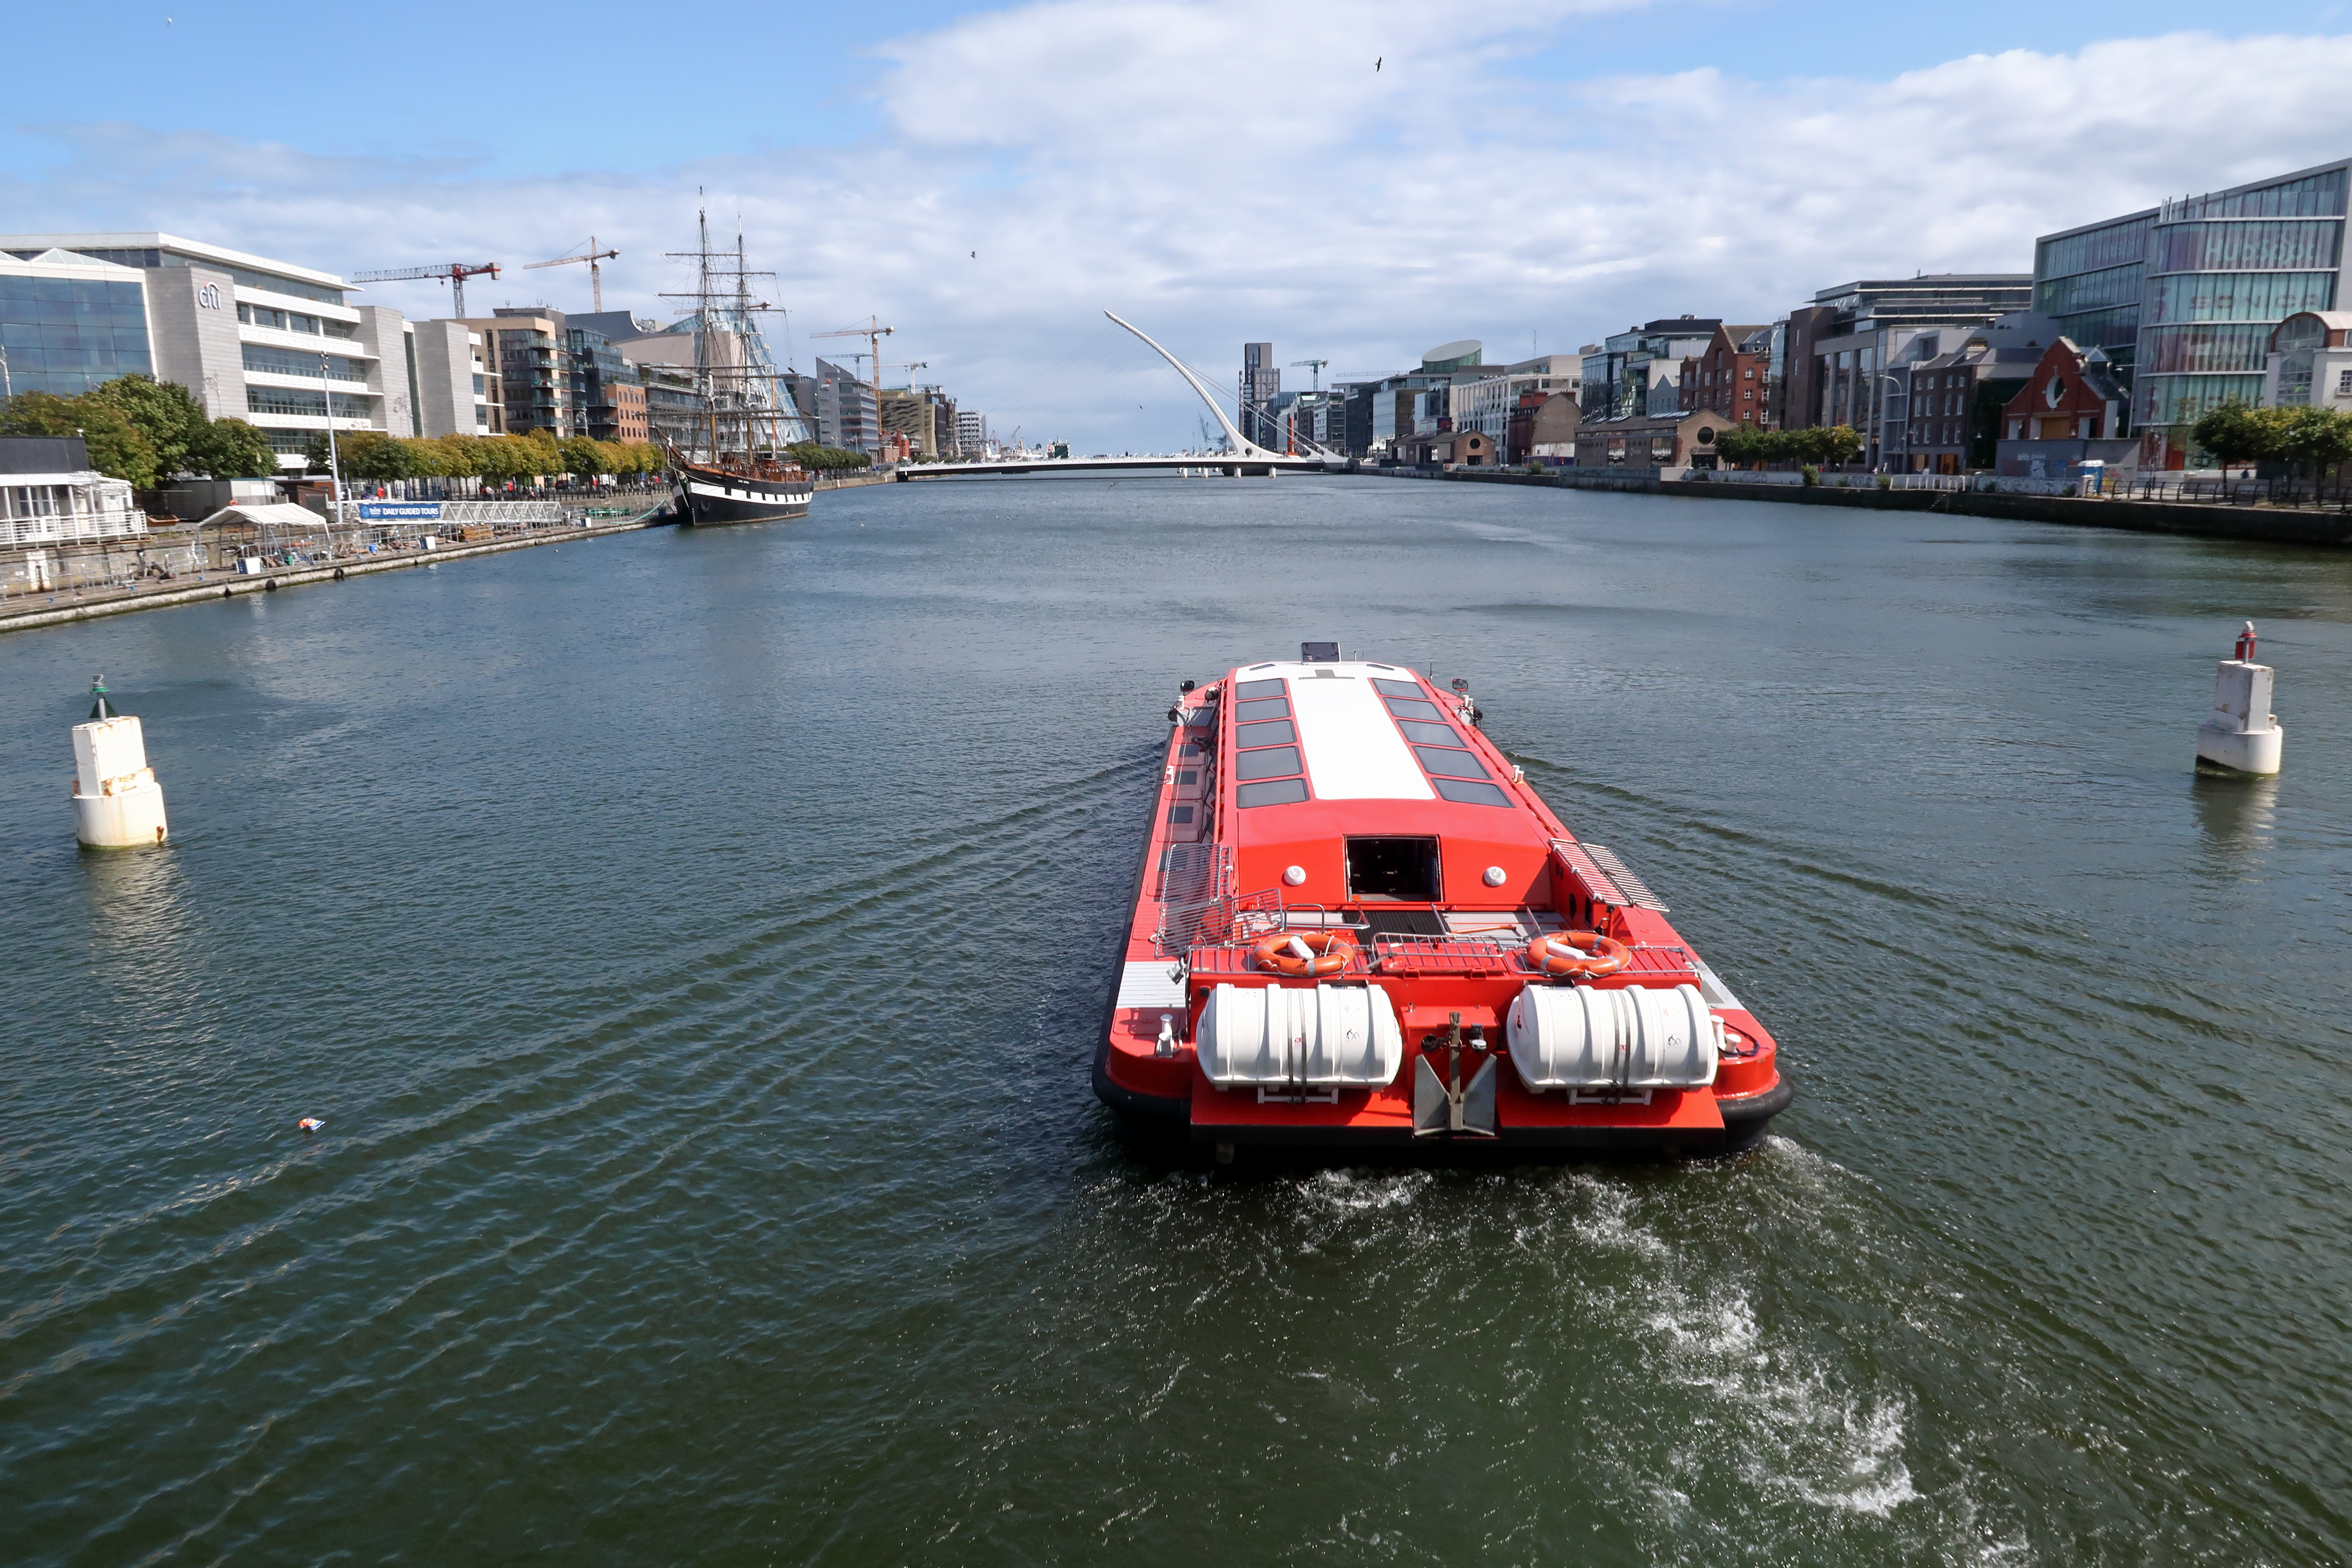 22 Tour on the River Liffey